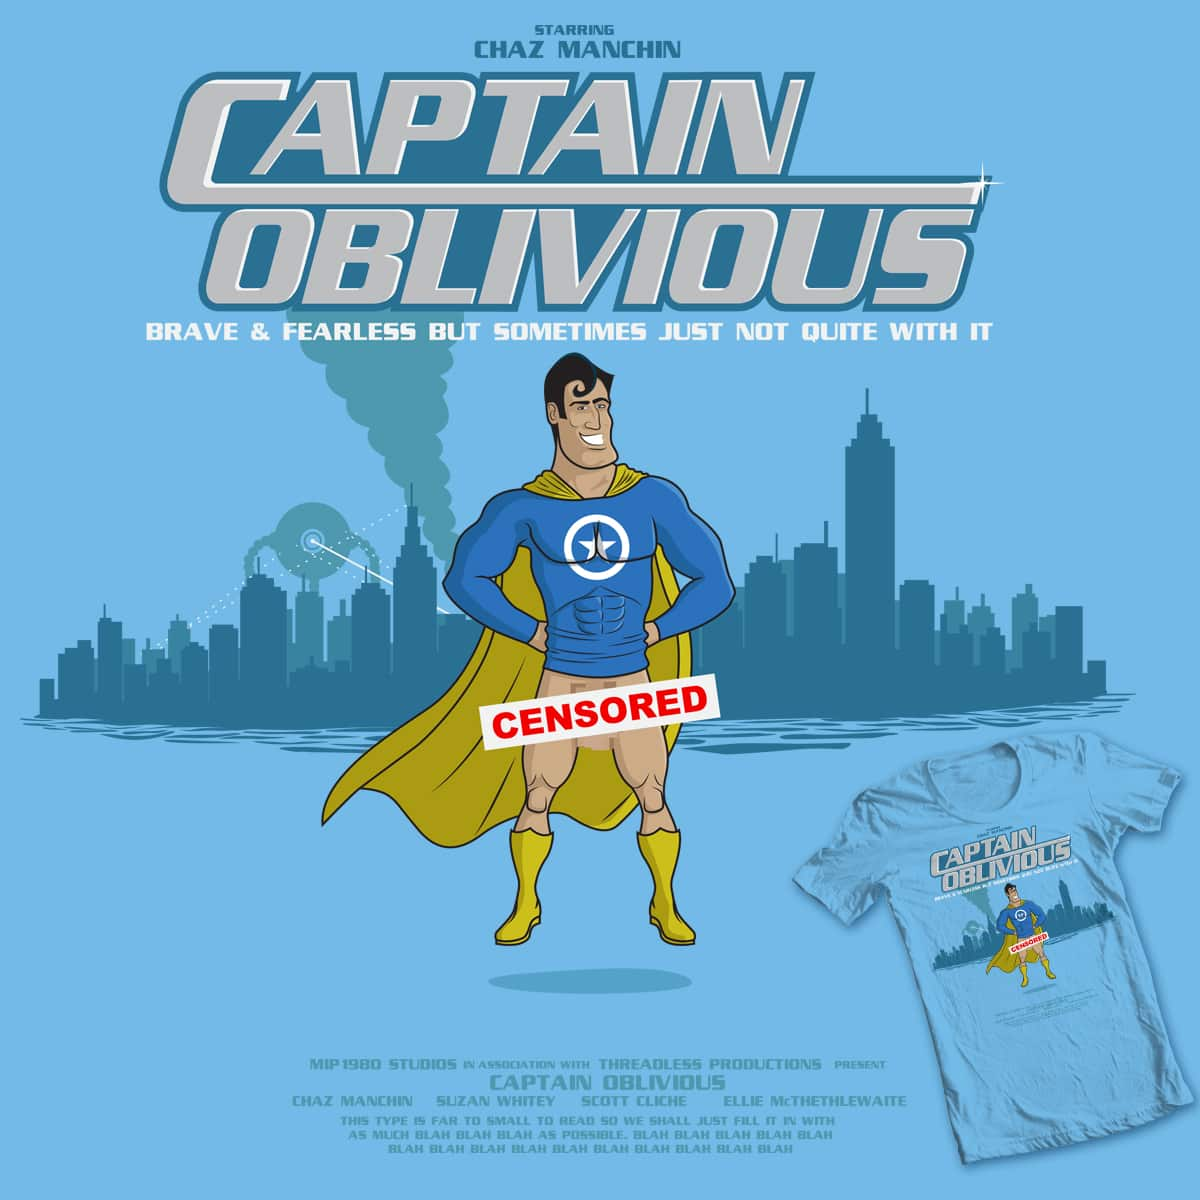 captain oblivious  by mip1980 on Threadless